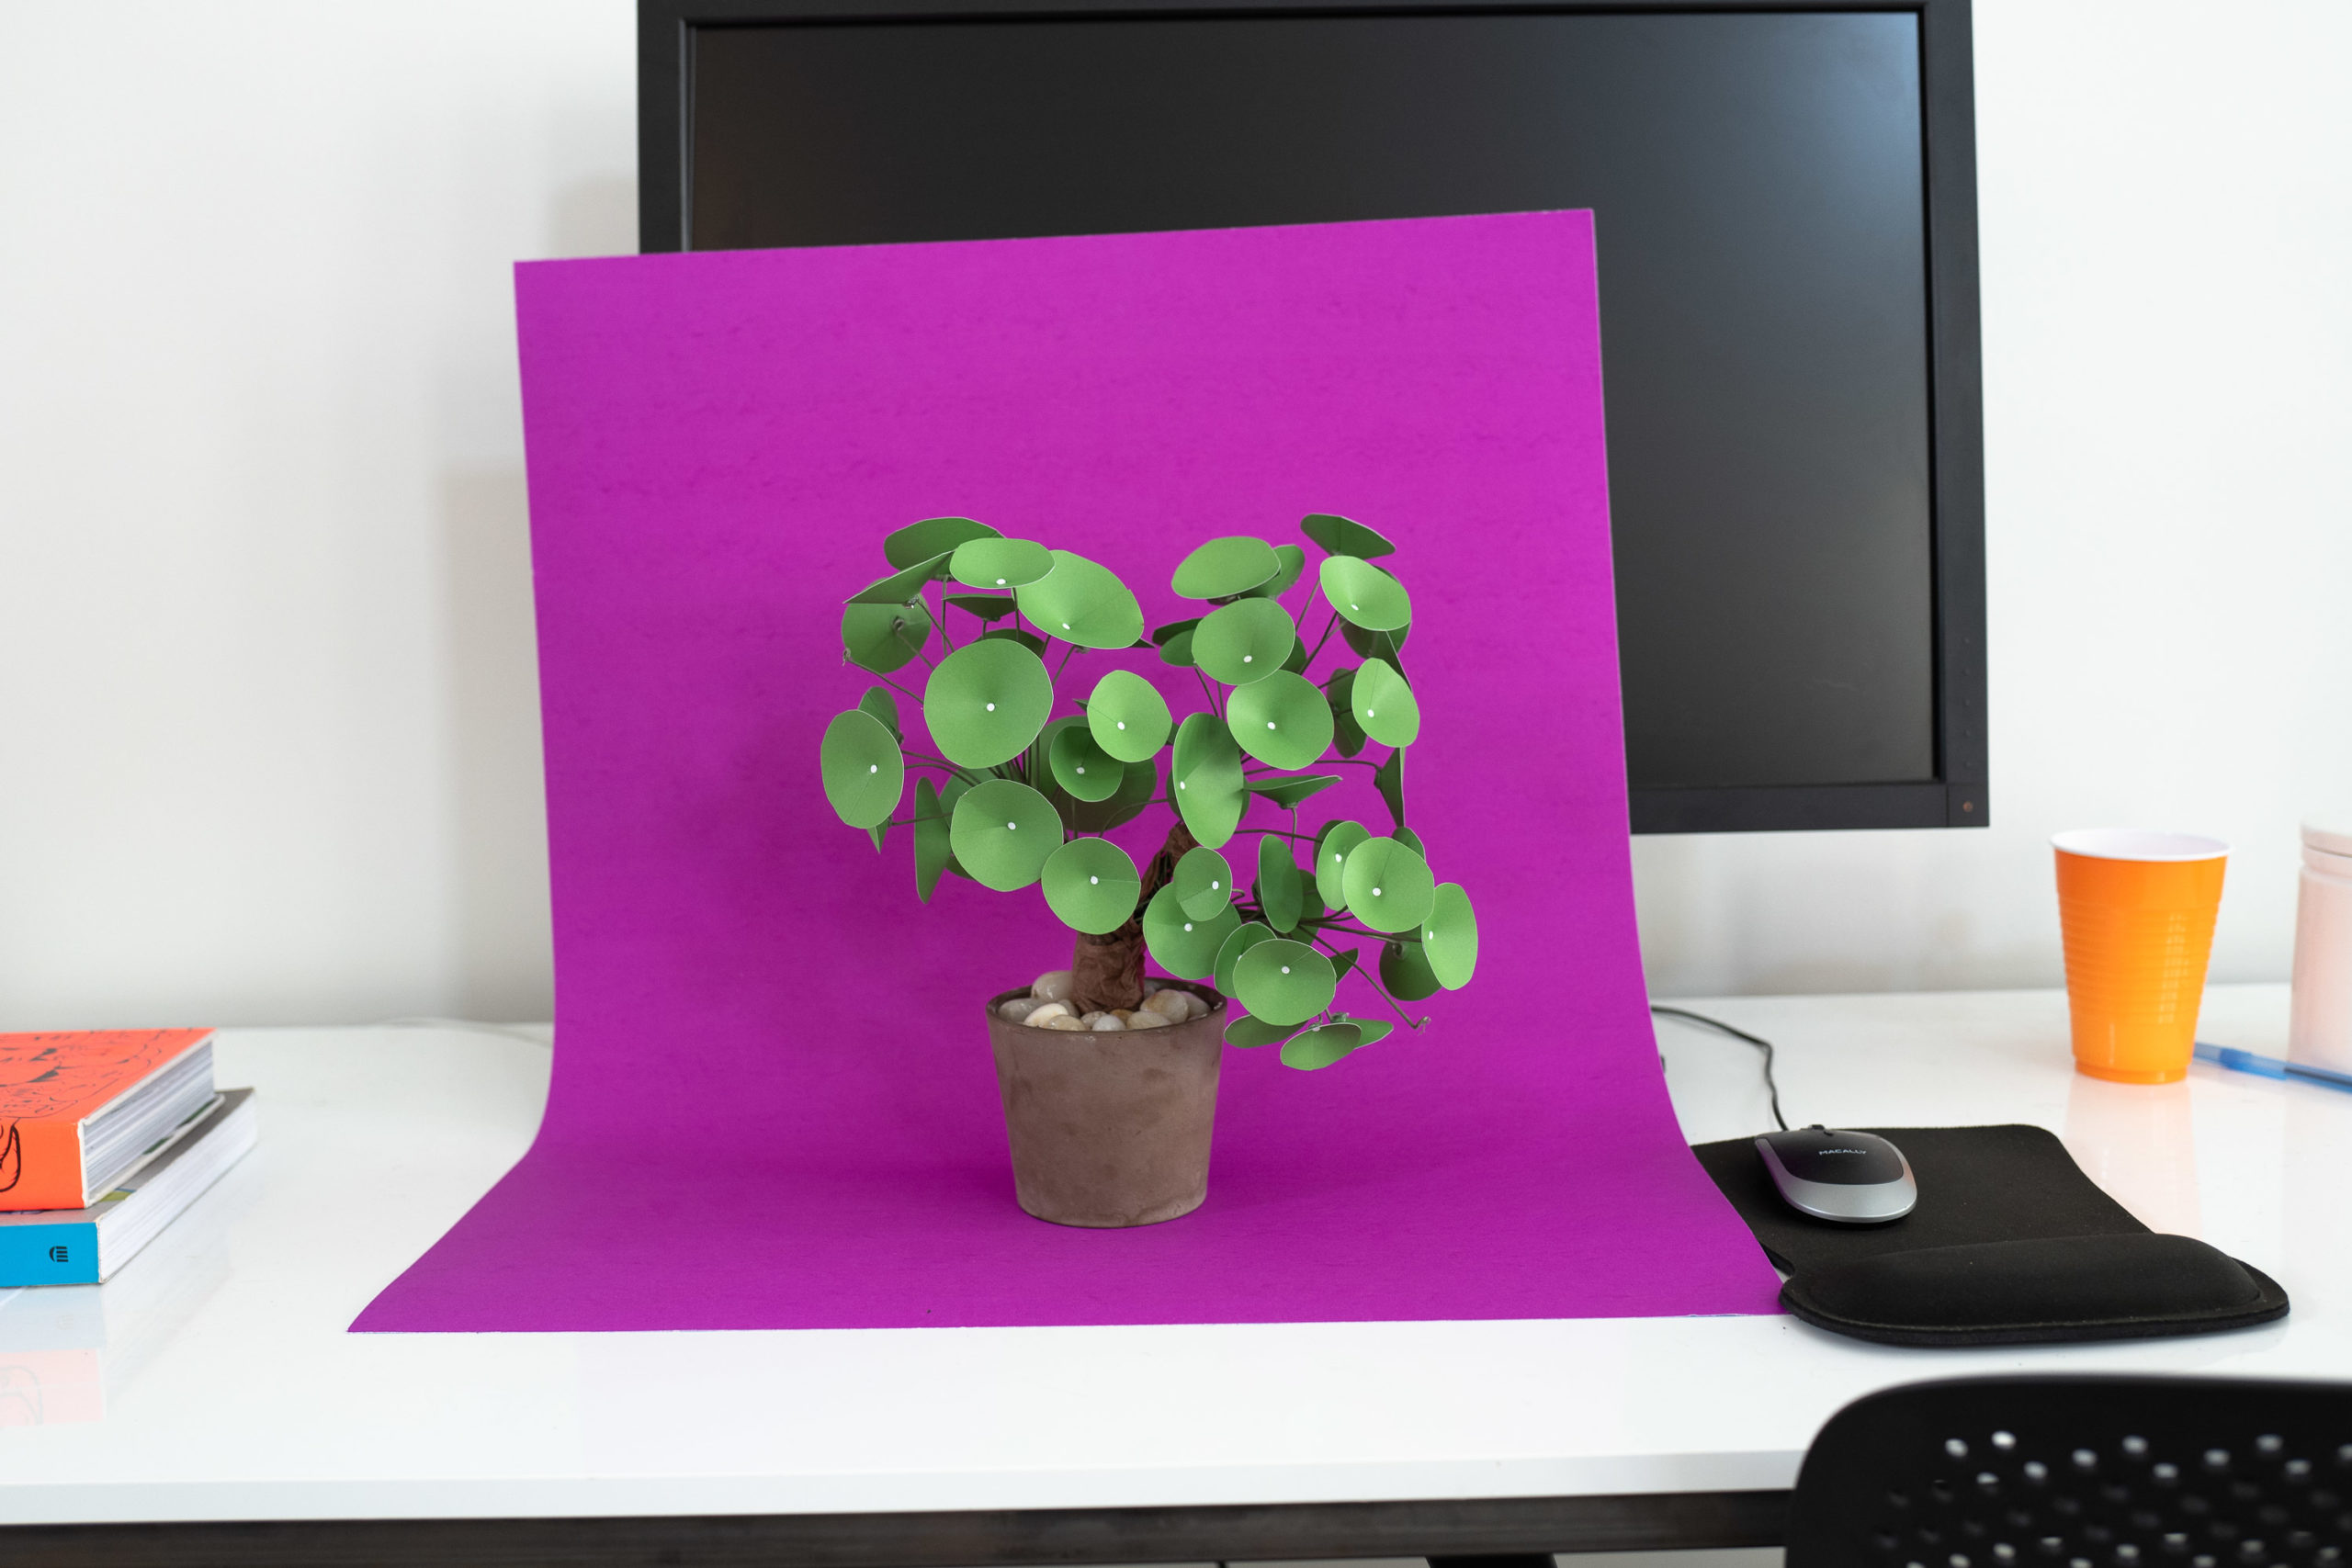 A paper plant on a bright magenta sheet of poster board